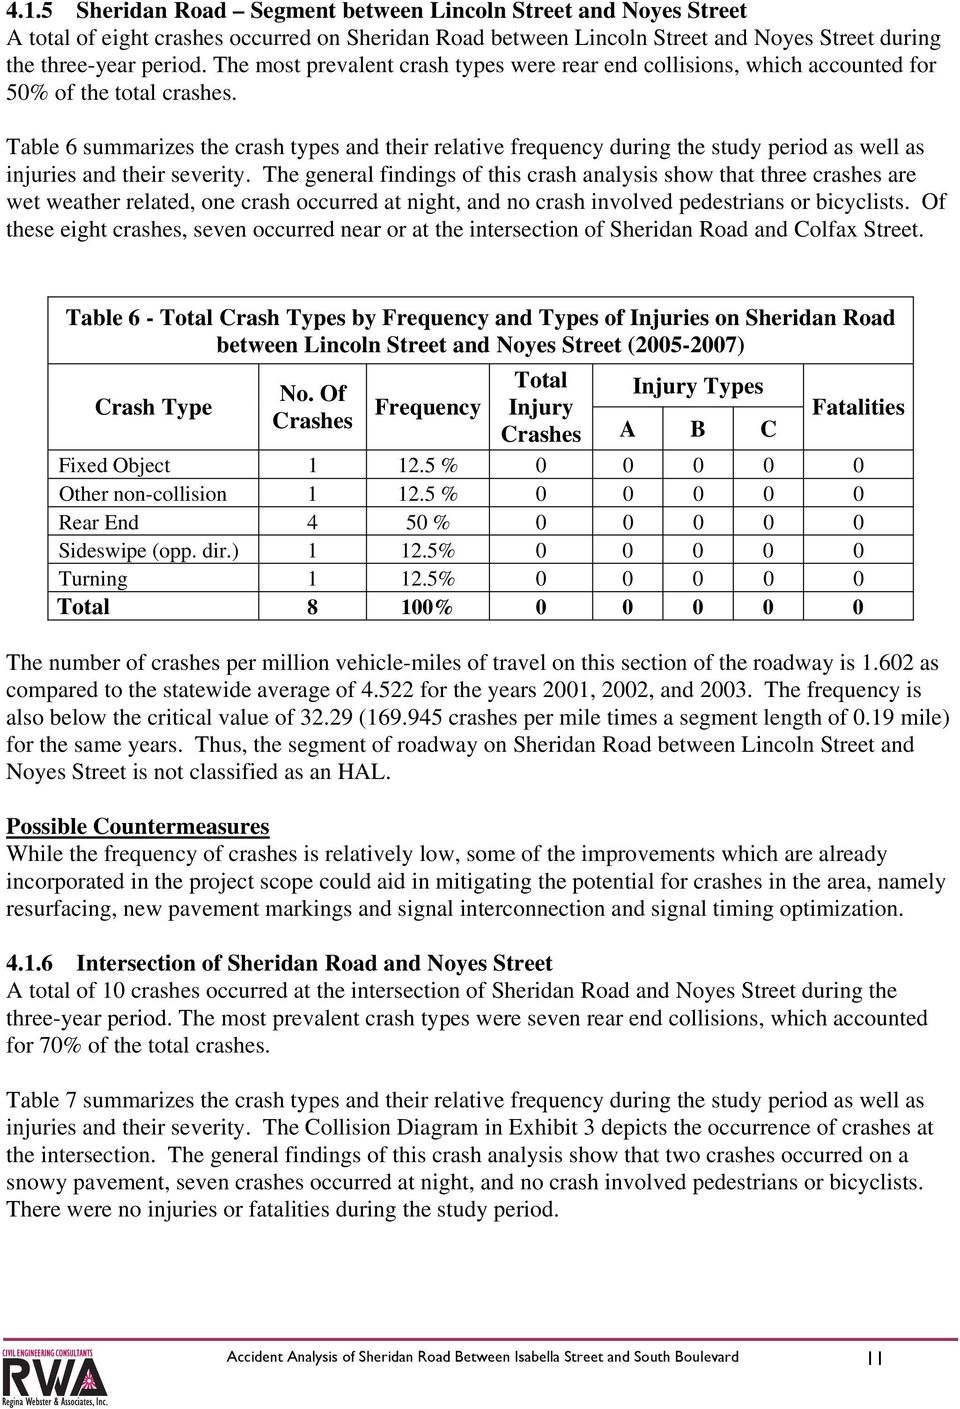 Table 6 summarizes the crash types and their relative frequency during the study period as well as injuries and their severity.